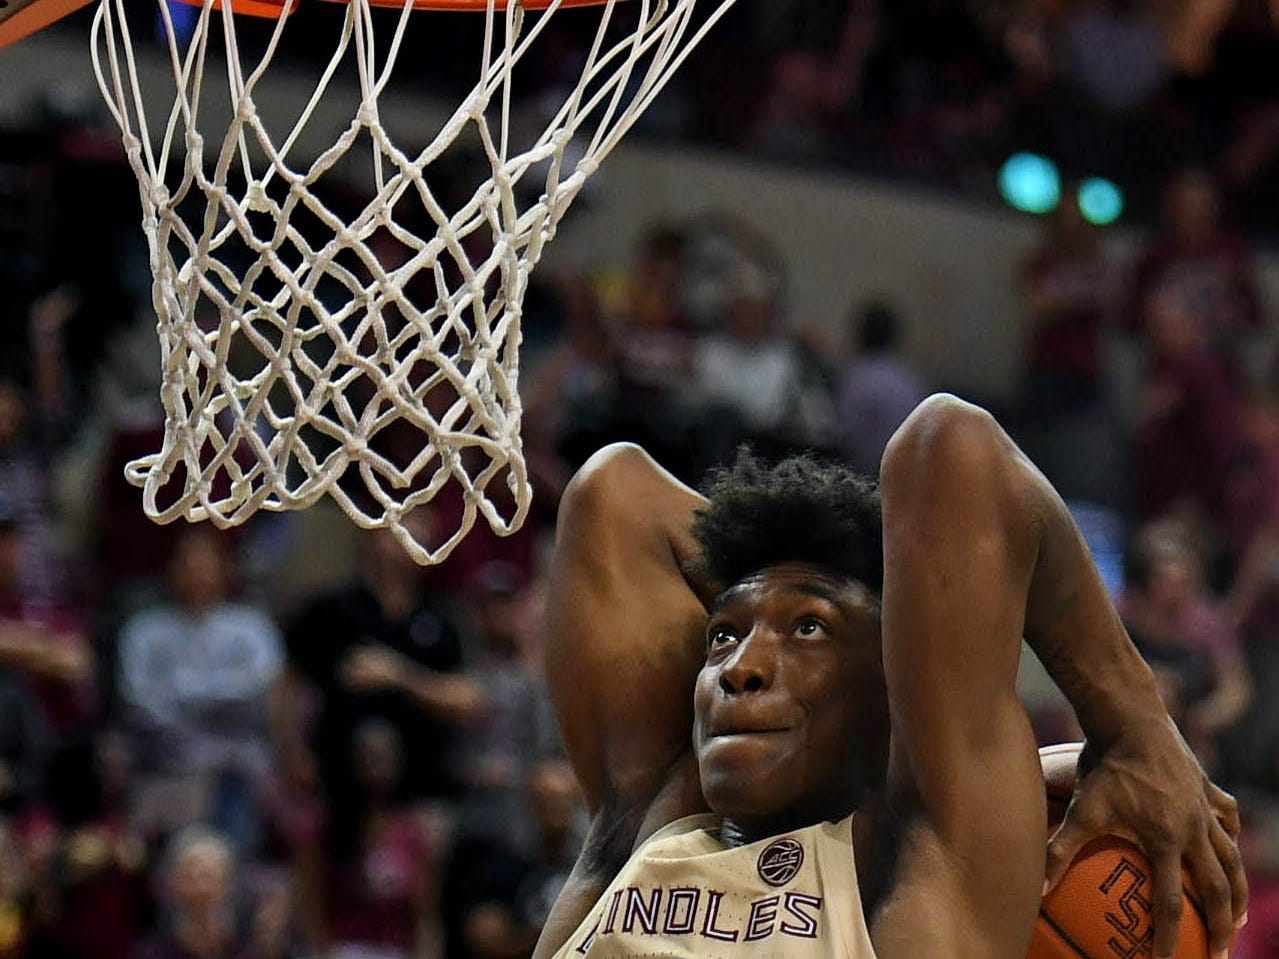 Mar 2, 2019; Tallahassee, FL, USA; Florida State Seminoles guard Terance Mann (14) dunks the ball as a celebration to winning the game against the North Carolina State Wolfpack at Donald L. Tucker Center. Mandatory Credit: Melina Myers-USA TODAY Sports